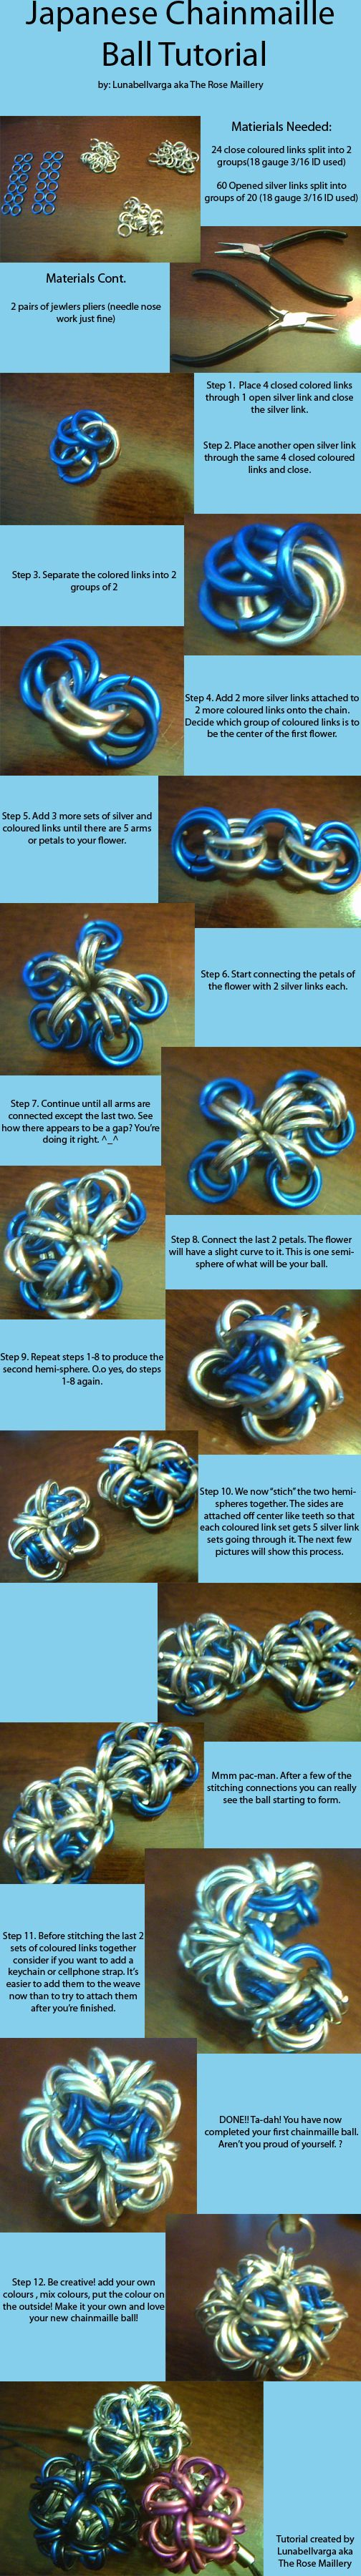 Chainmaille Ball Tutorial by ~lunabellvarga on deviantART